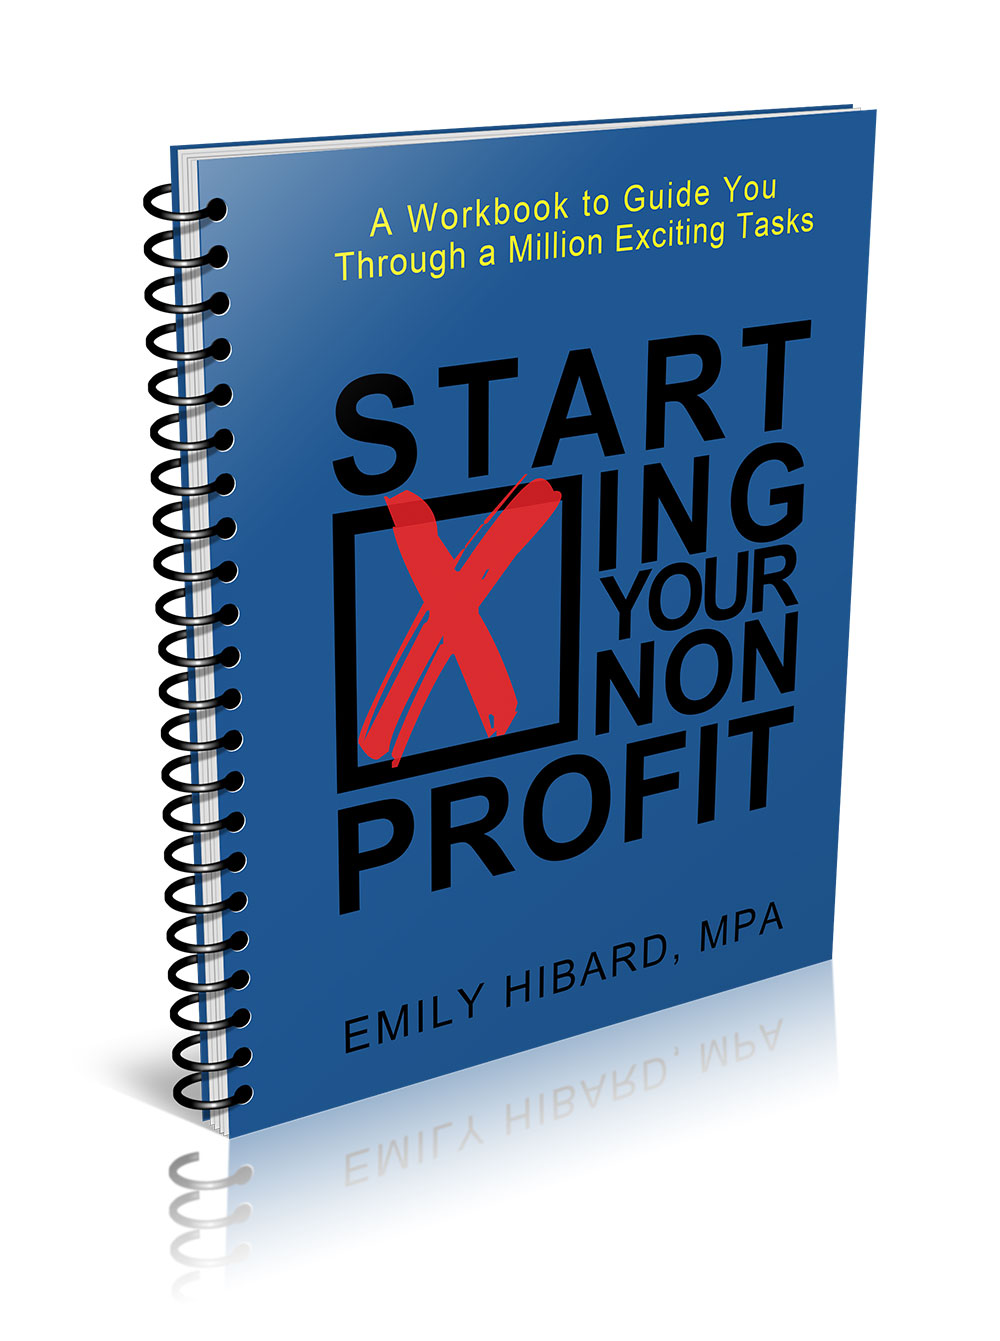 Photo of Starting Your Nonprofit: A Workbook to Guide You Through a Million Exciting Tasks